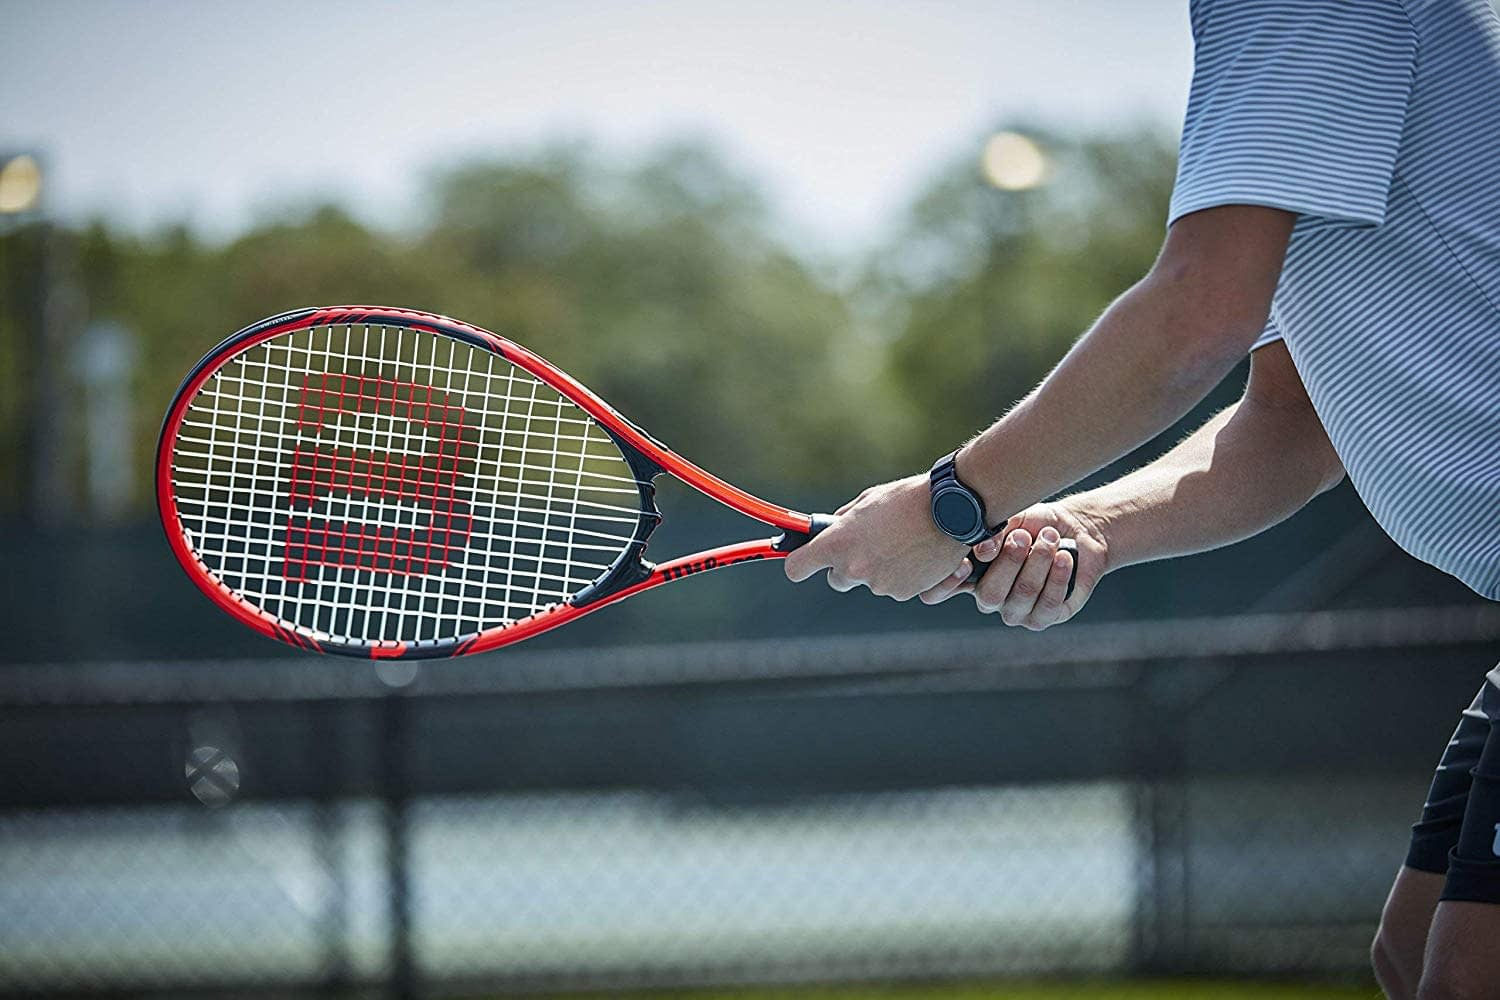 Wilson Federer Racket - Best Tennis Racquet for Beginners